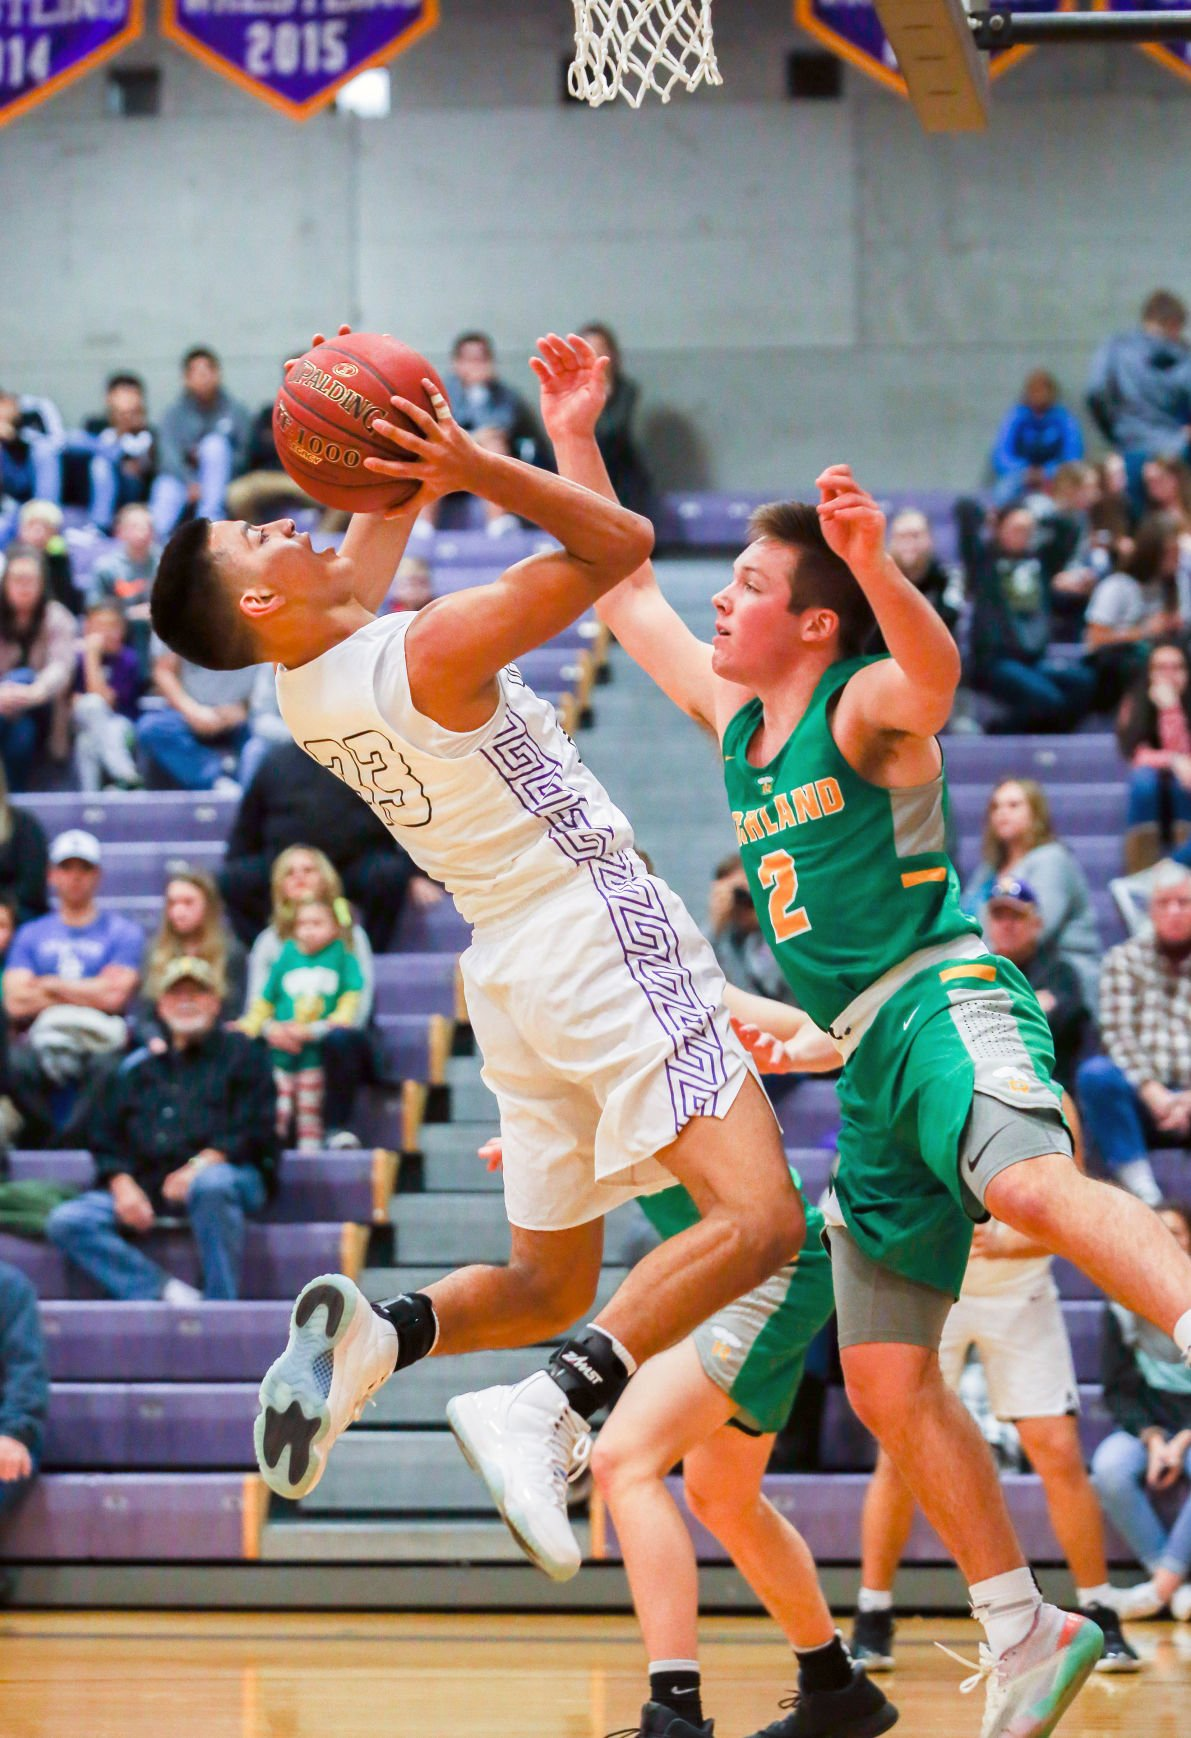 Boys hoops: Bombers too much for Dawgs to handle